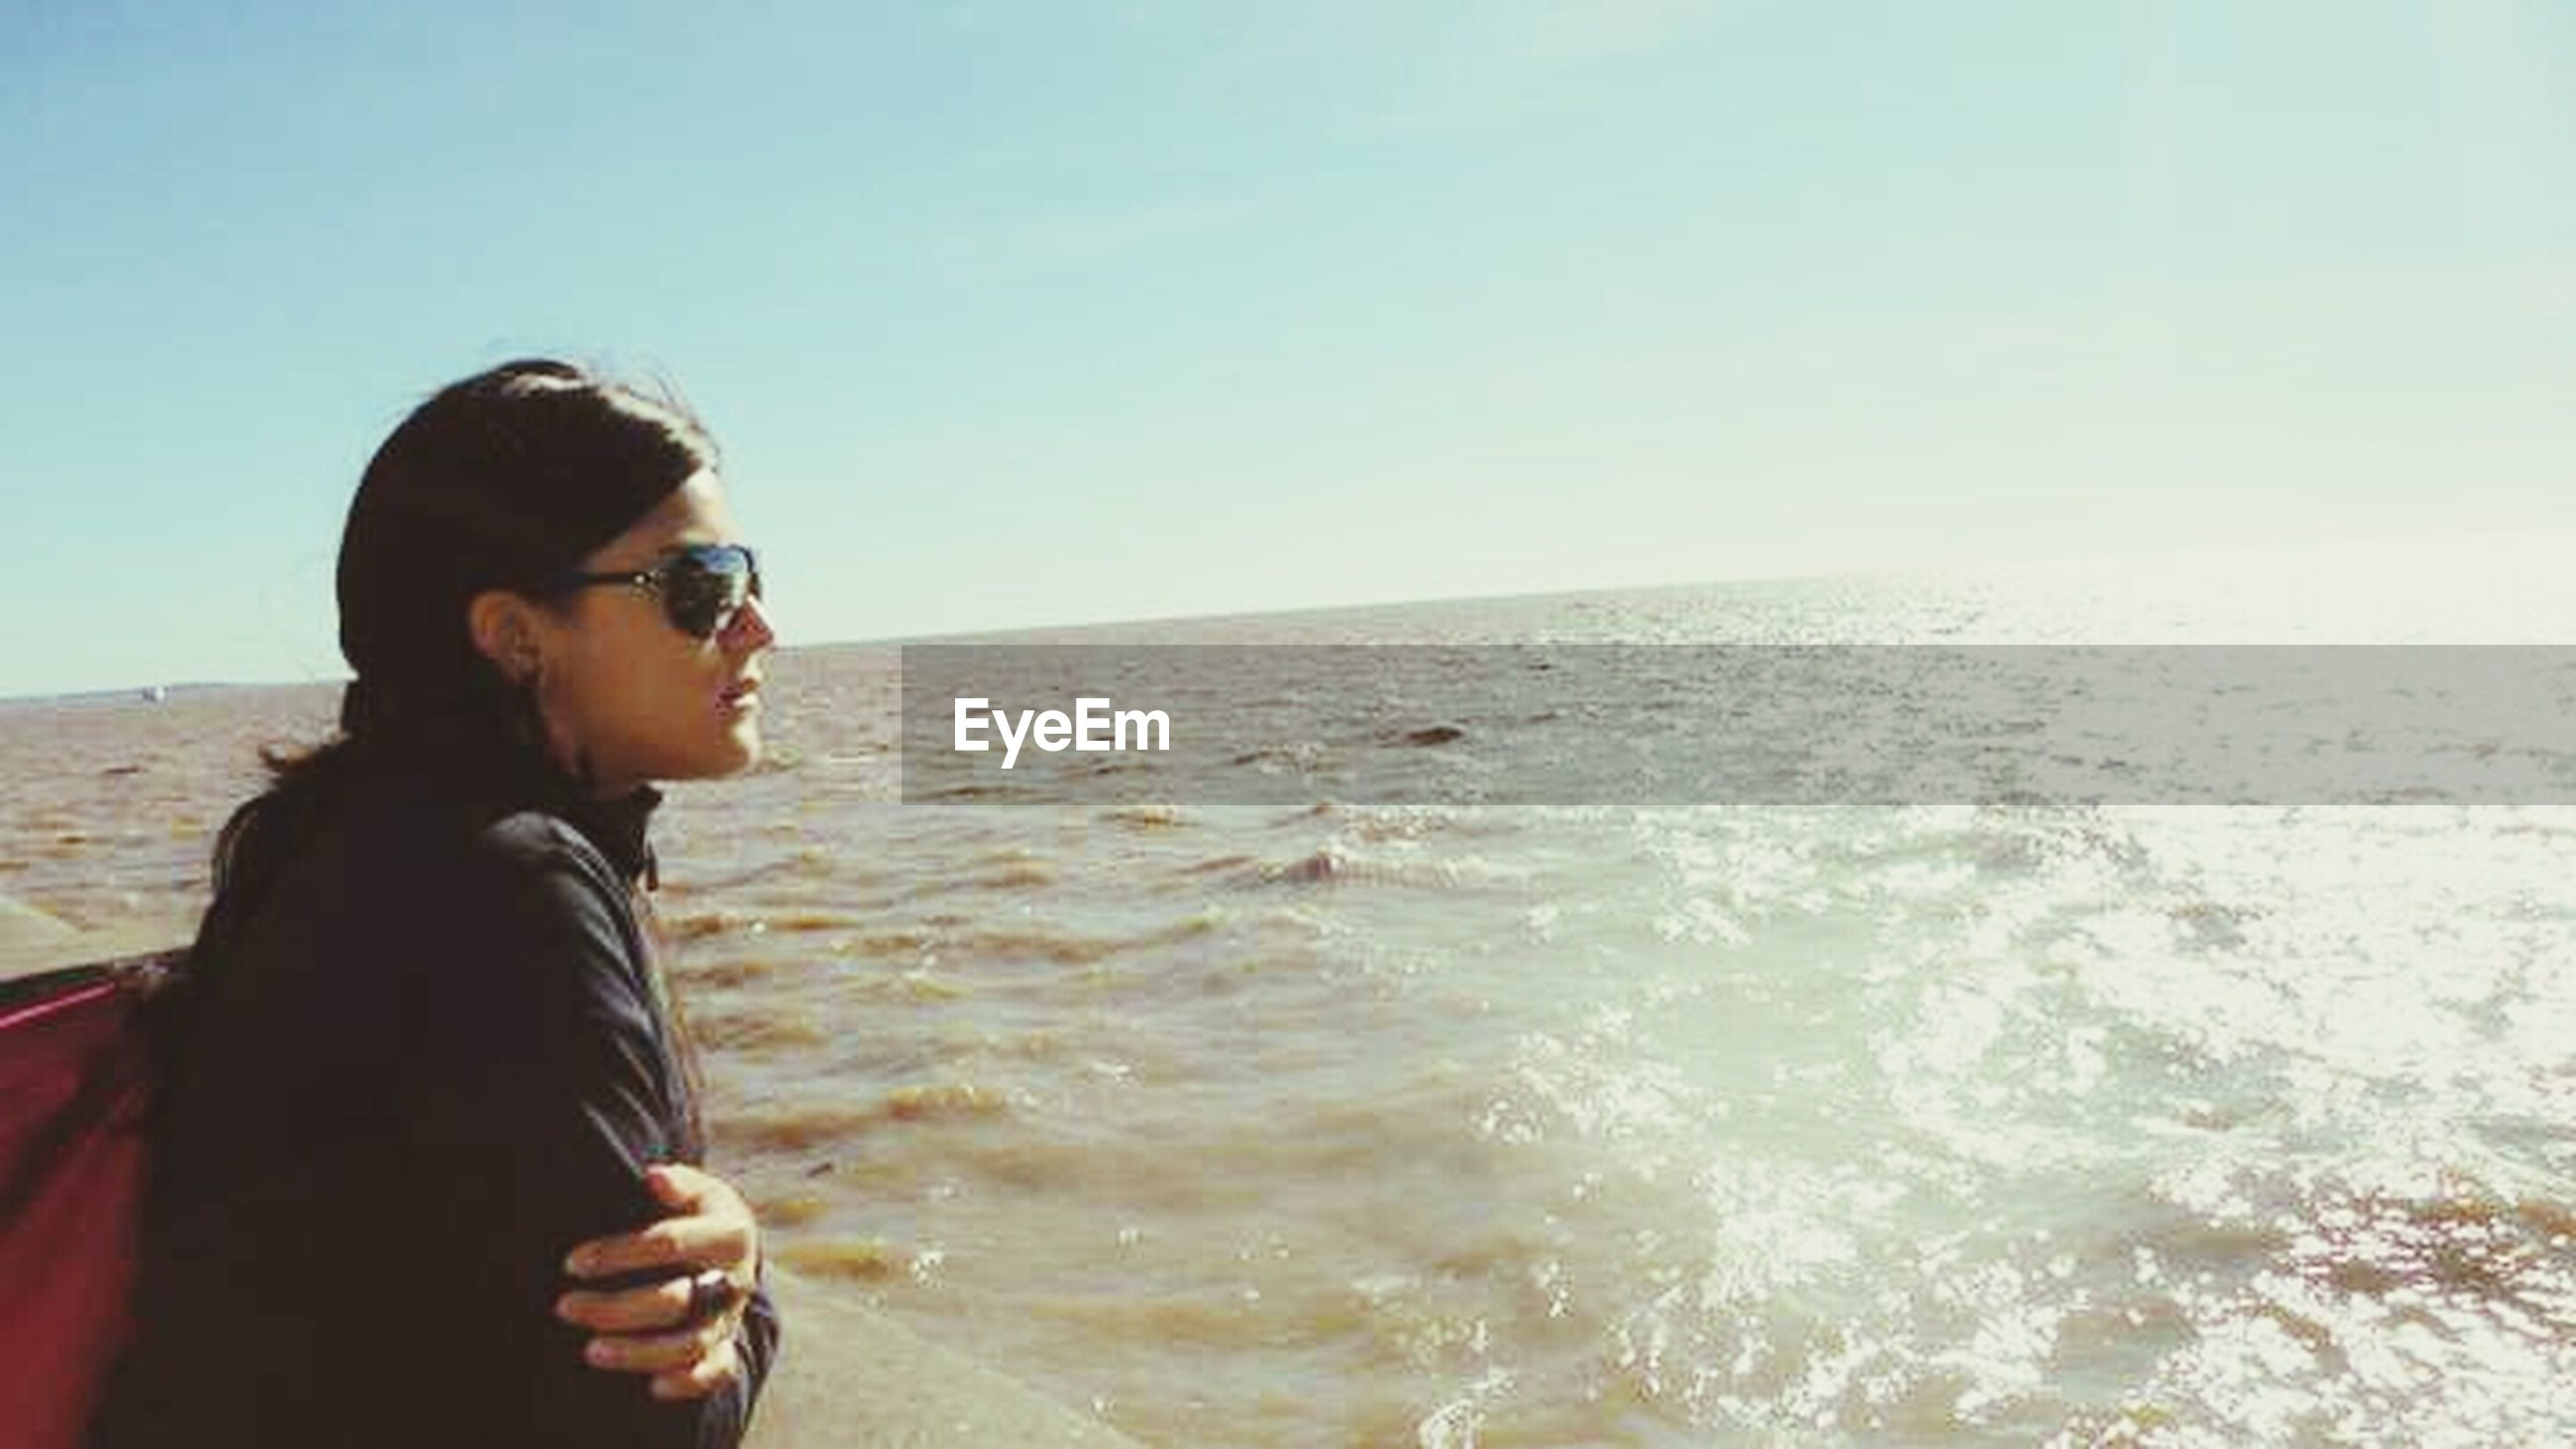 young adult, water, sea, lifestyles, person, leisure activity, beach, young women, portrait, looking at camera, horizon over water, sunglasses, clear sky, headshot, standing, sky, casual clothing